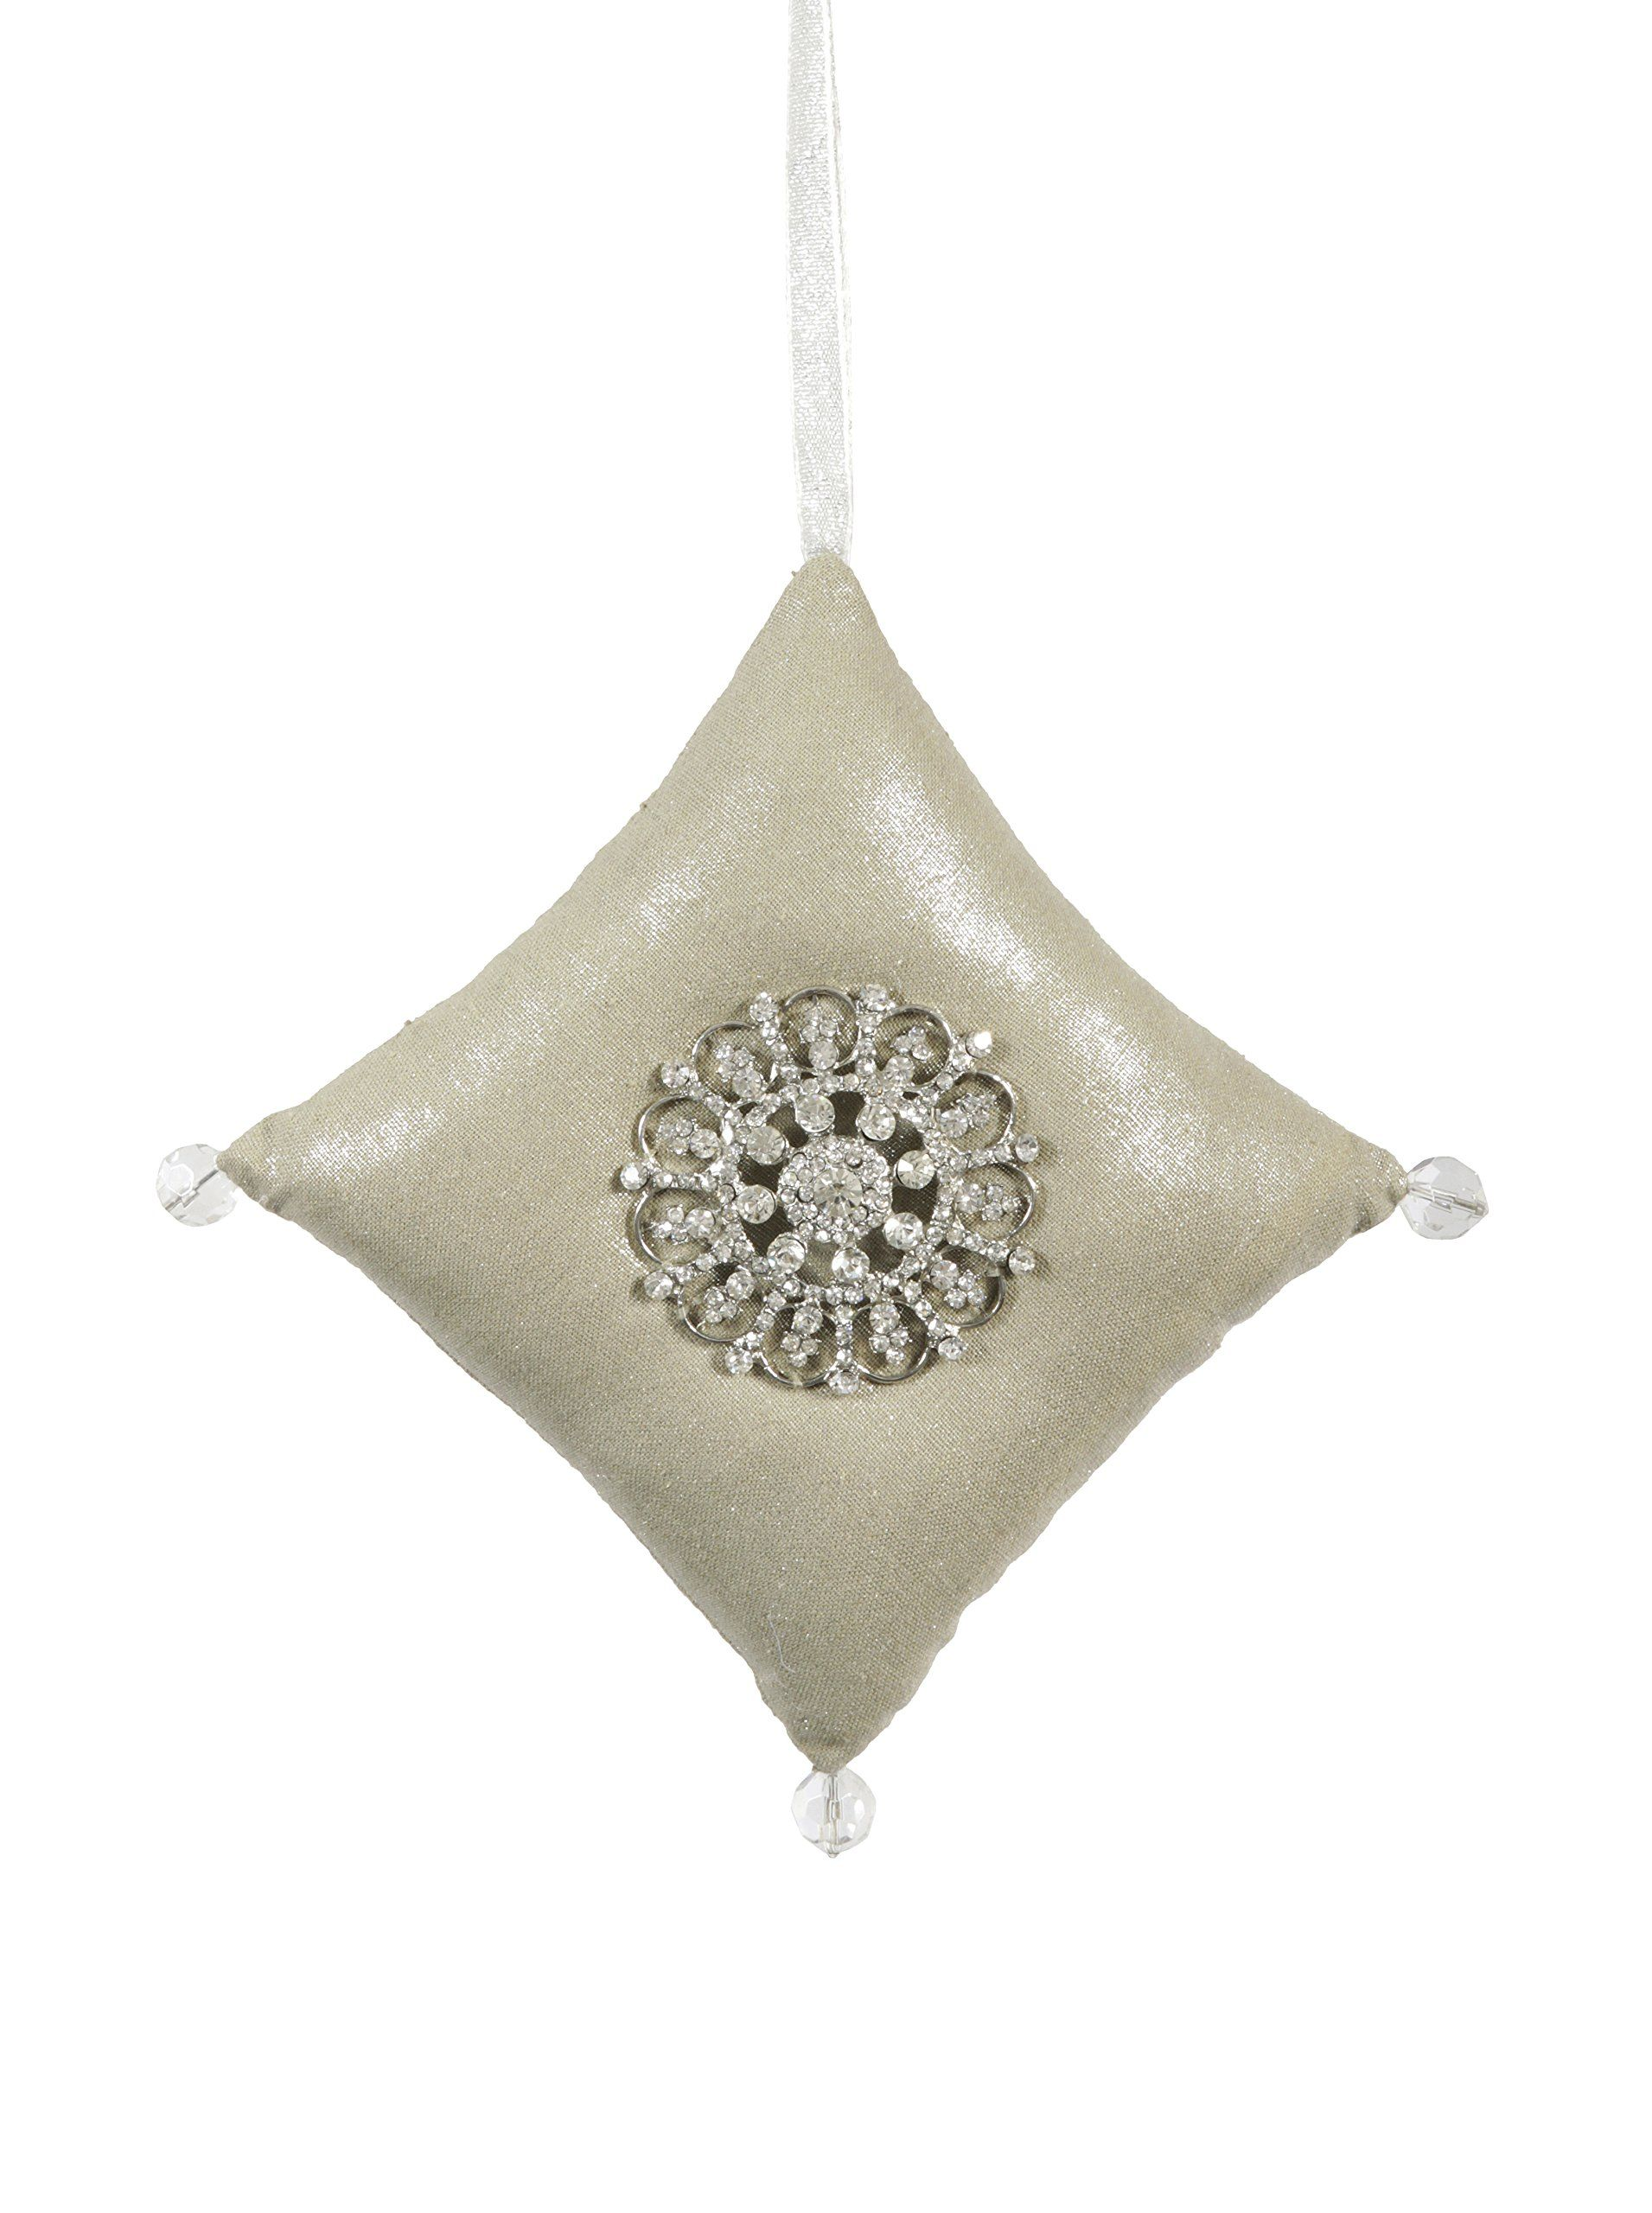 Winward Handcrafted Gatsby Jewel Pillow Ornament, Champagne Silver at MYHABIT